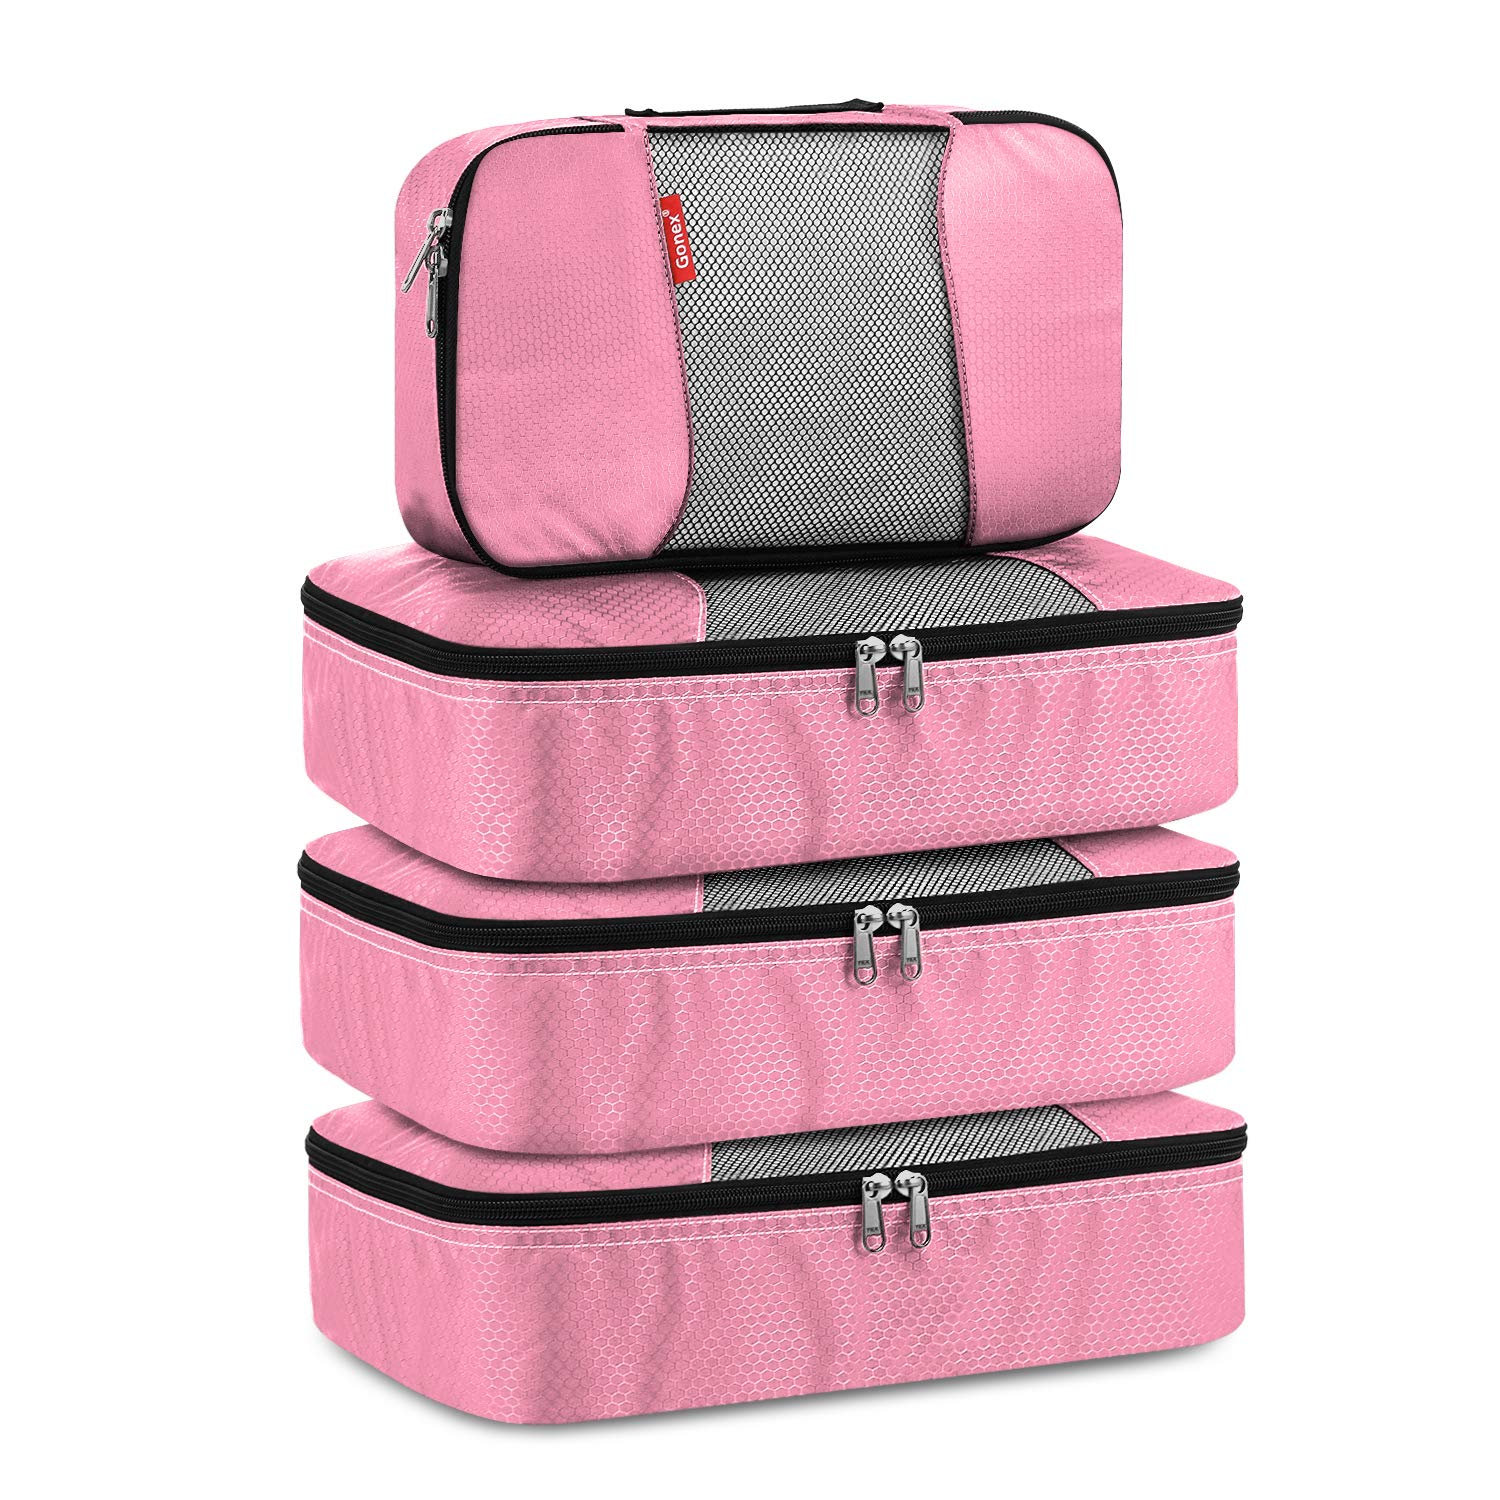 Gonex II Packing Cubes Travel Luggage Packing Organizers 3M+S Pink by Gonex